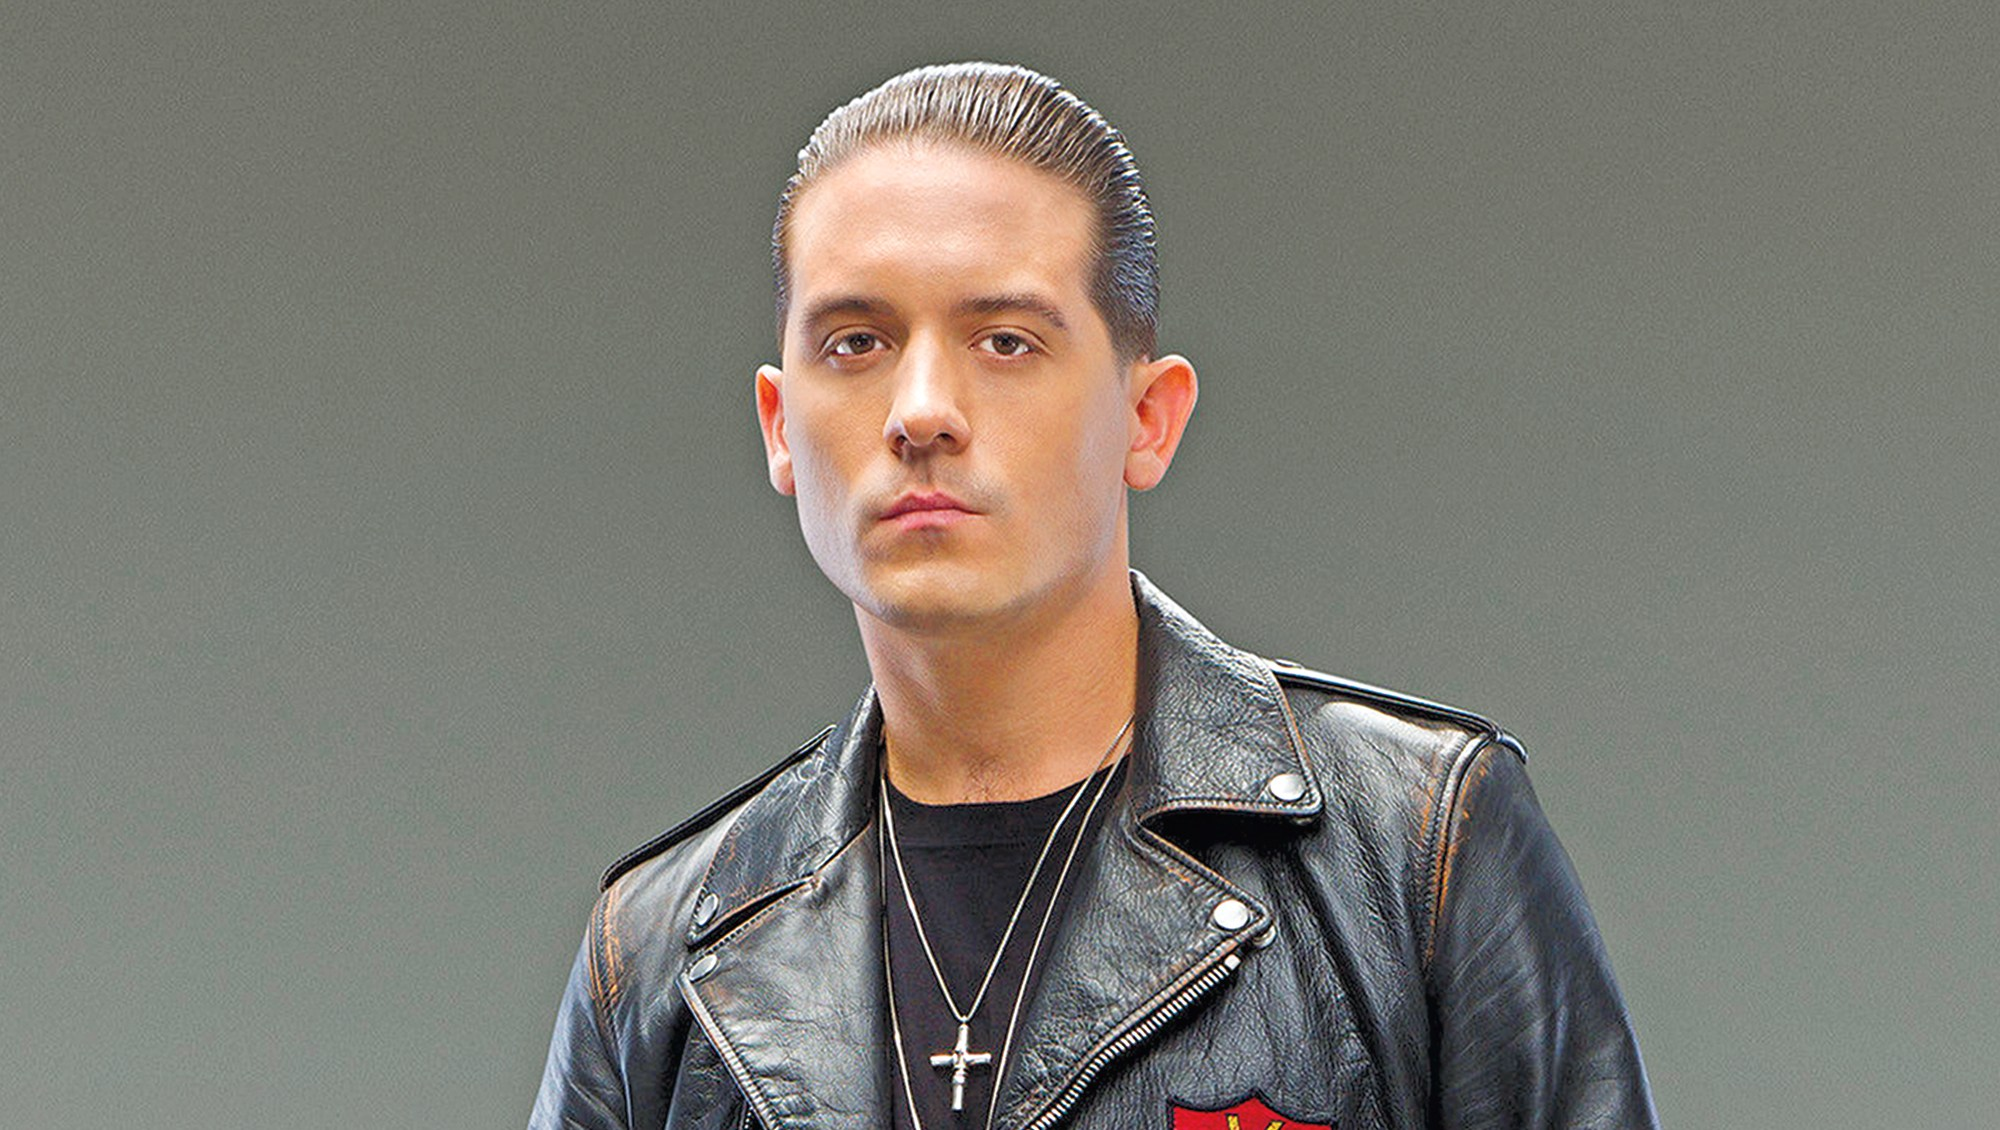 G-Eazy - Rewind Ft. Anthony Russo